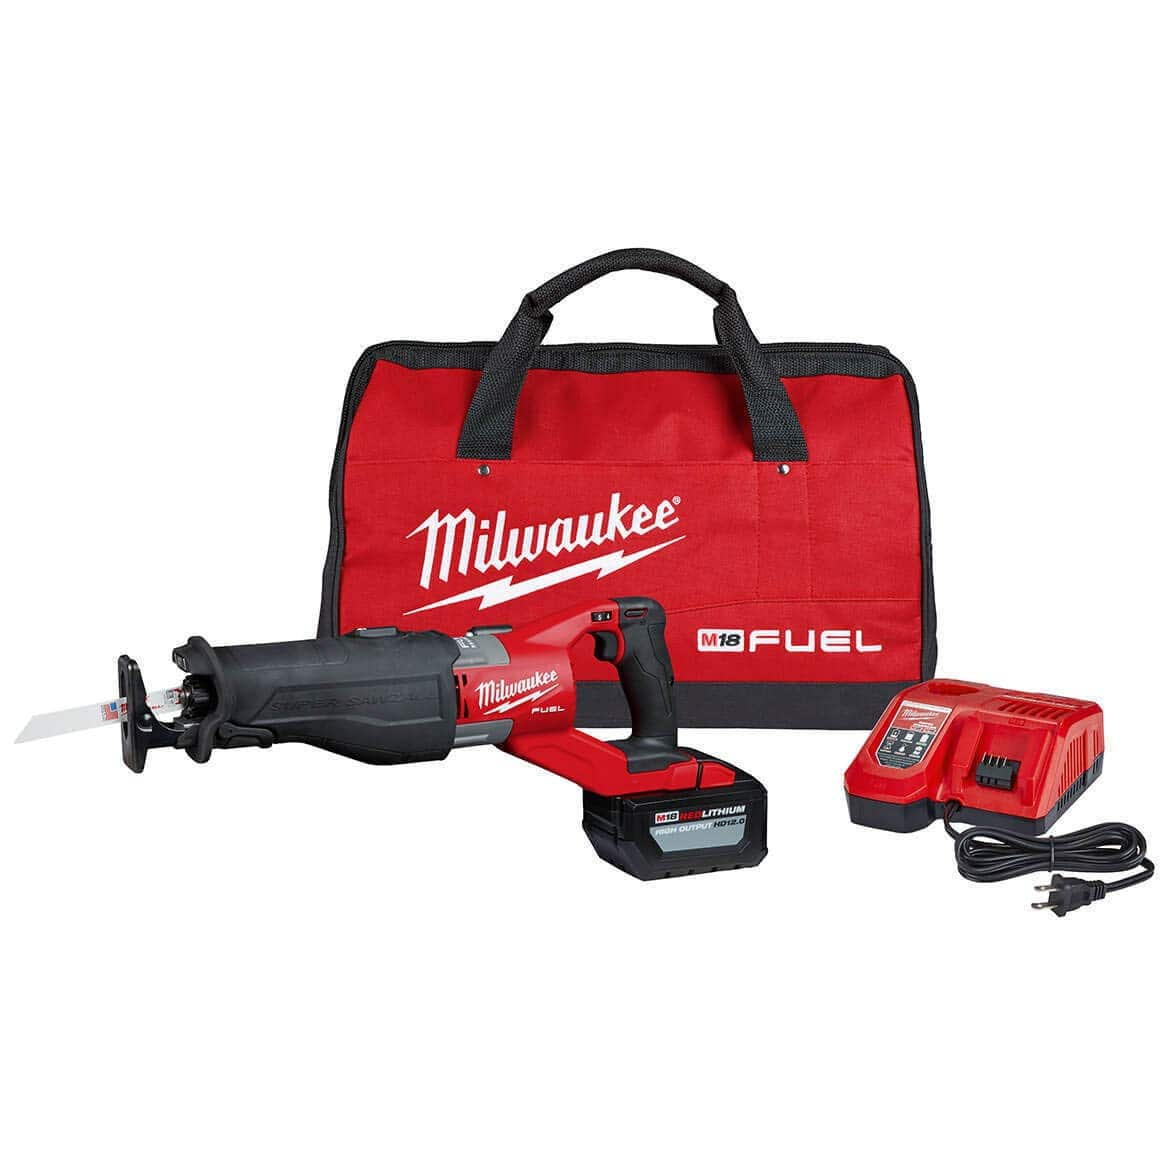 Milwaukee M18 FUEL SUPER SAWZALL w/12.0Ah battery, Rapid Charger, and Bag for $299.00